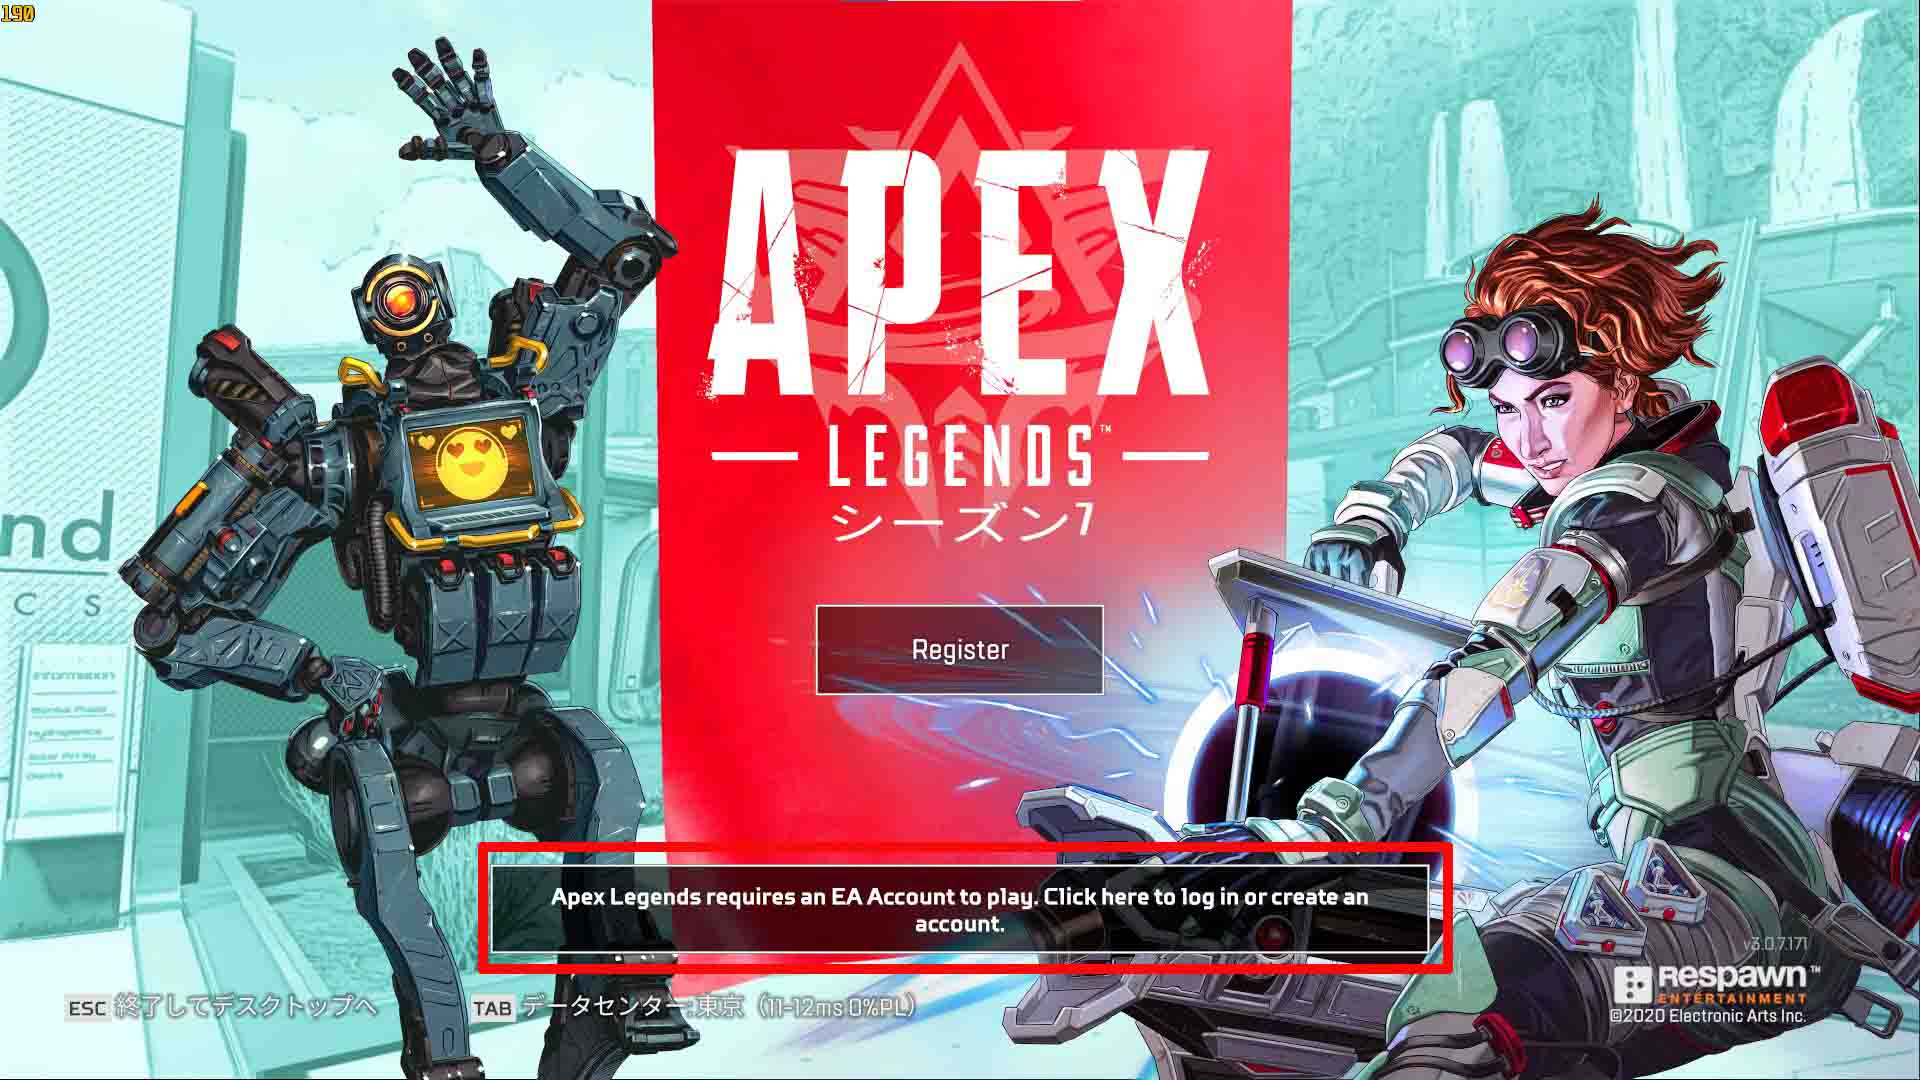 ④Apex Legends requires an EA Account to play. Click here to log in or create an account.をクリックする